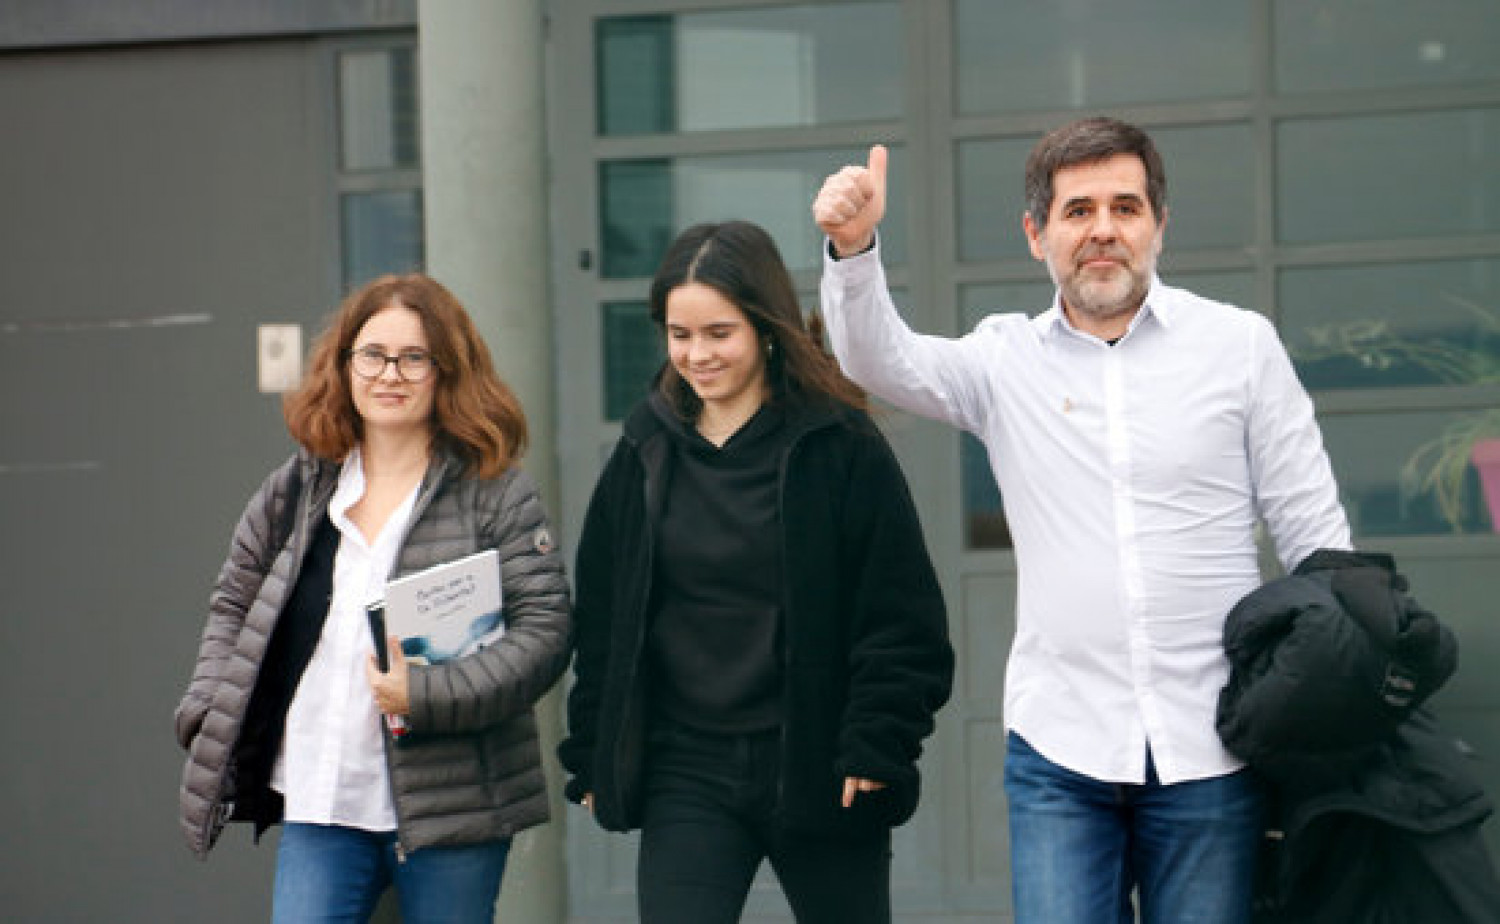 Jordi Sànchez leaves Lledoners prison accompanied by his partner and daughter after being granted leave for 48 hours in January, 2020 (by Blanca Blay)